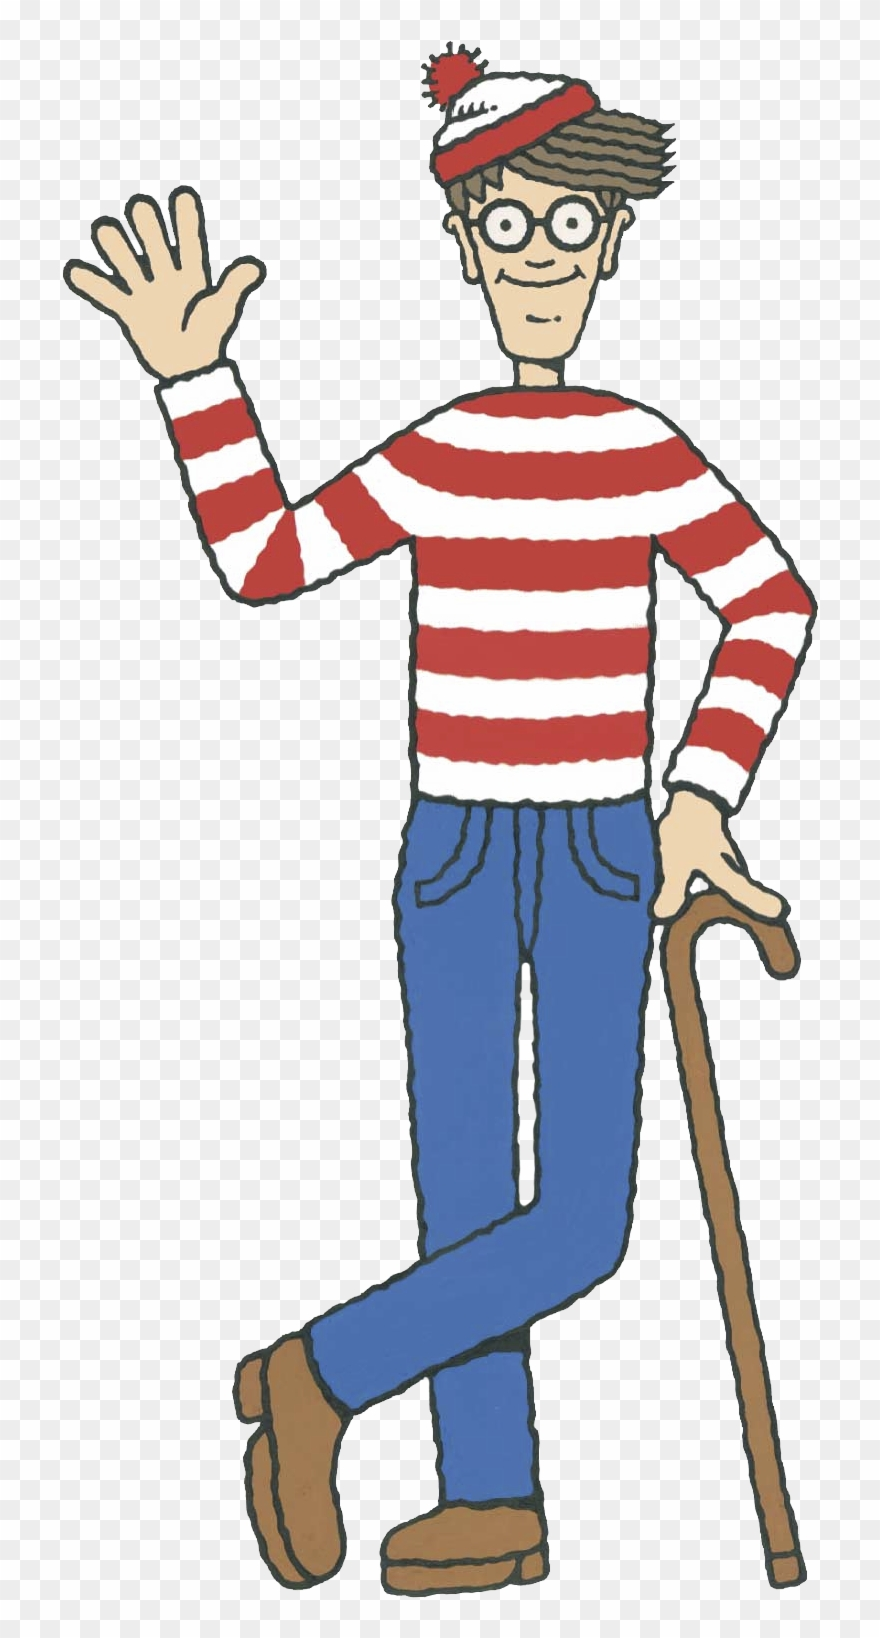 Wally the green monster clipart picture library Where\'s Wally - Where\'s Wally? Clipart (#1112362) - PinClipart picture library